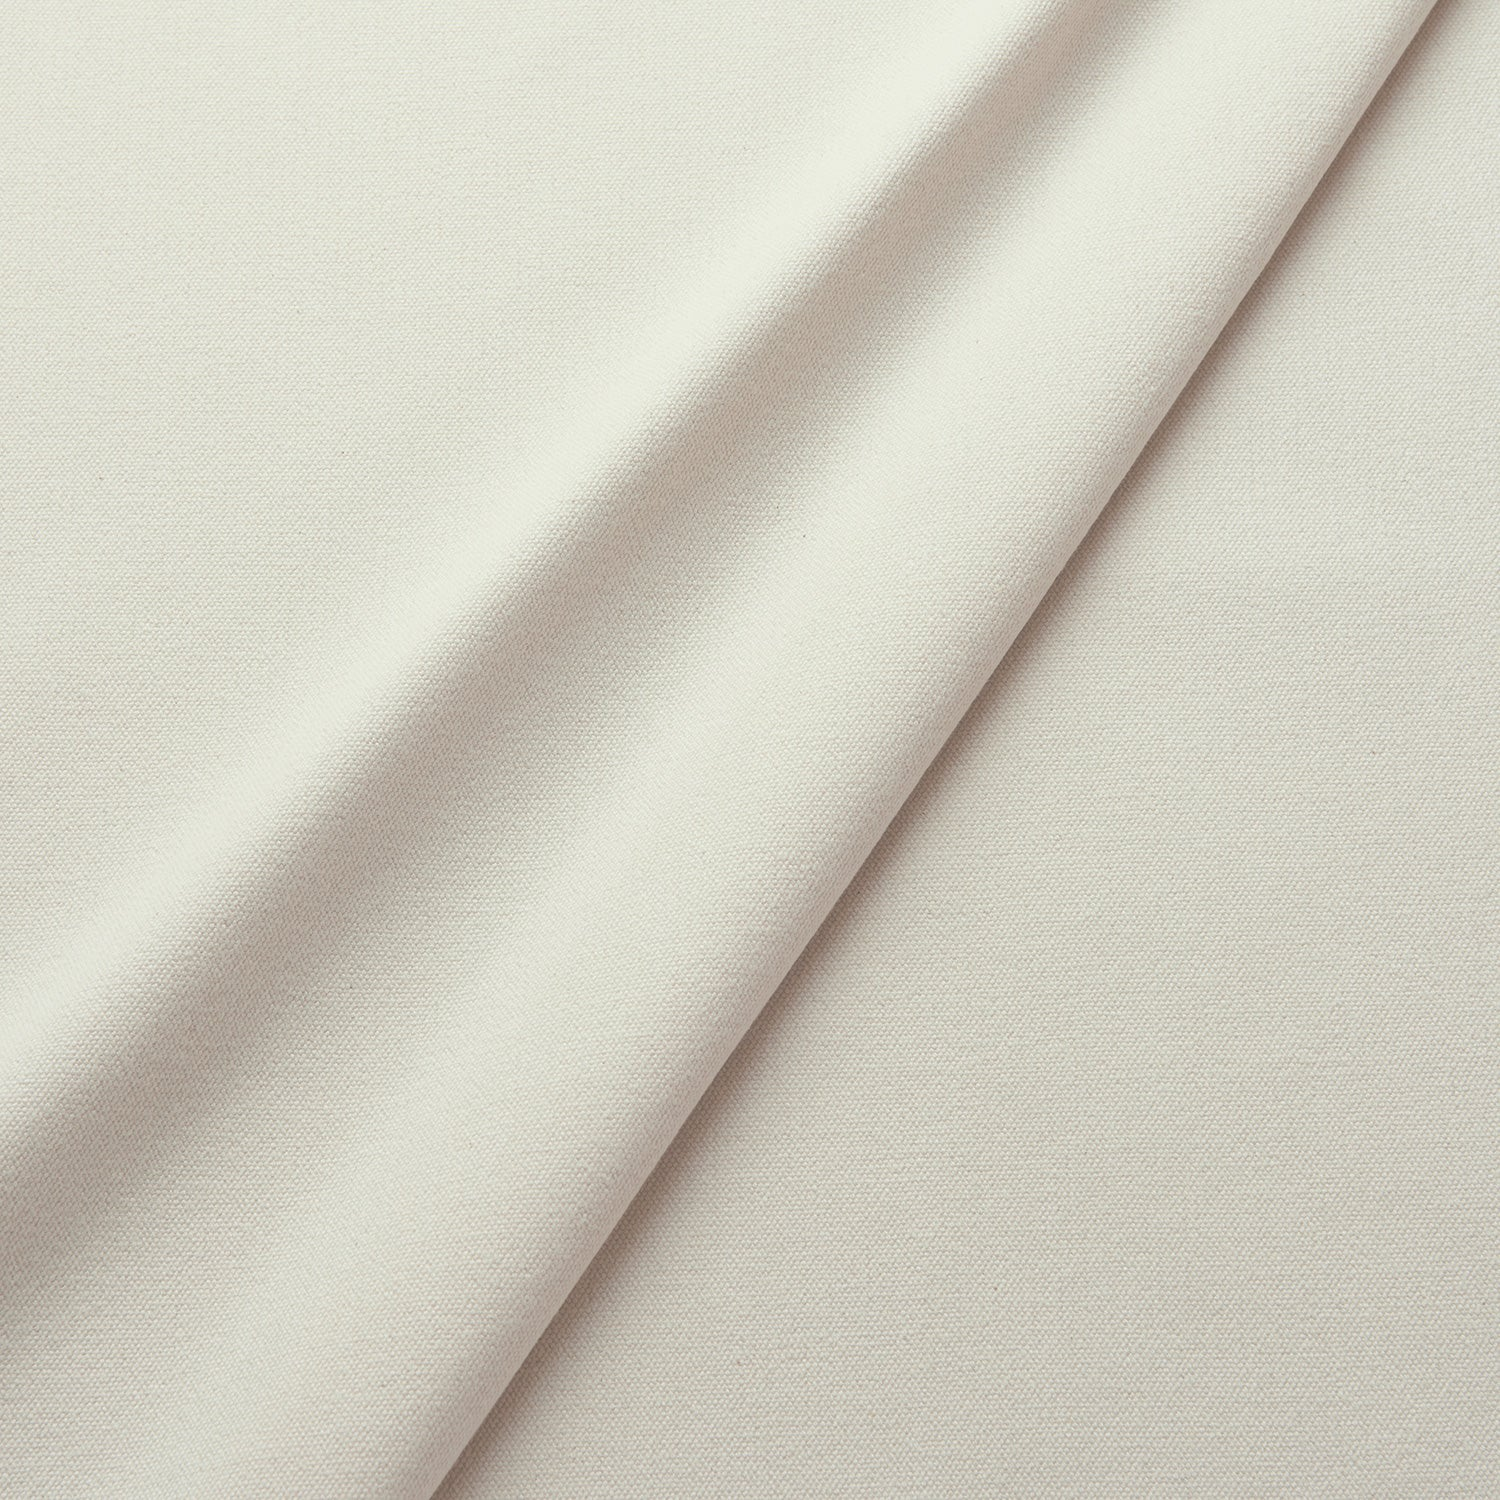 Fabric swatch of a eco-friendly plain light neutral  fabric for curtains and upholstery